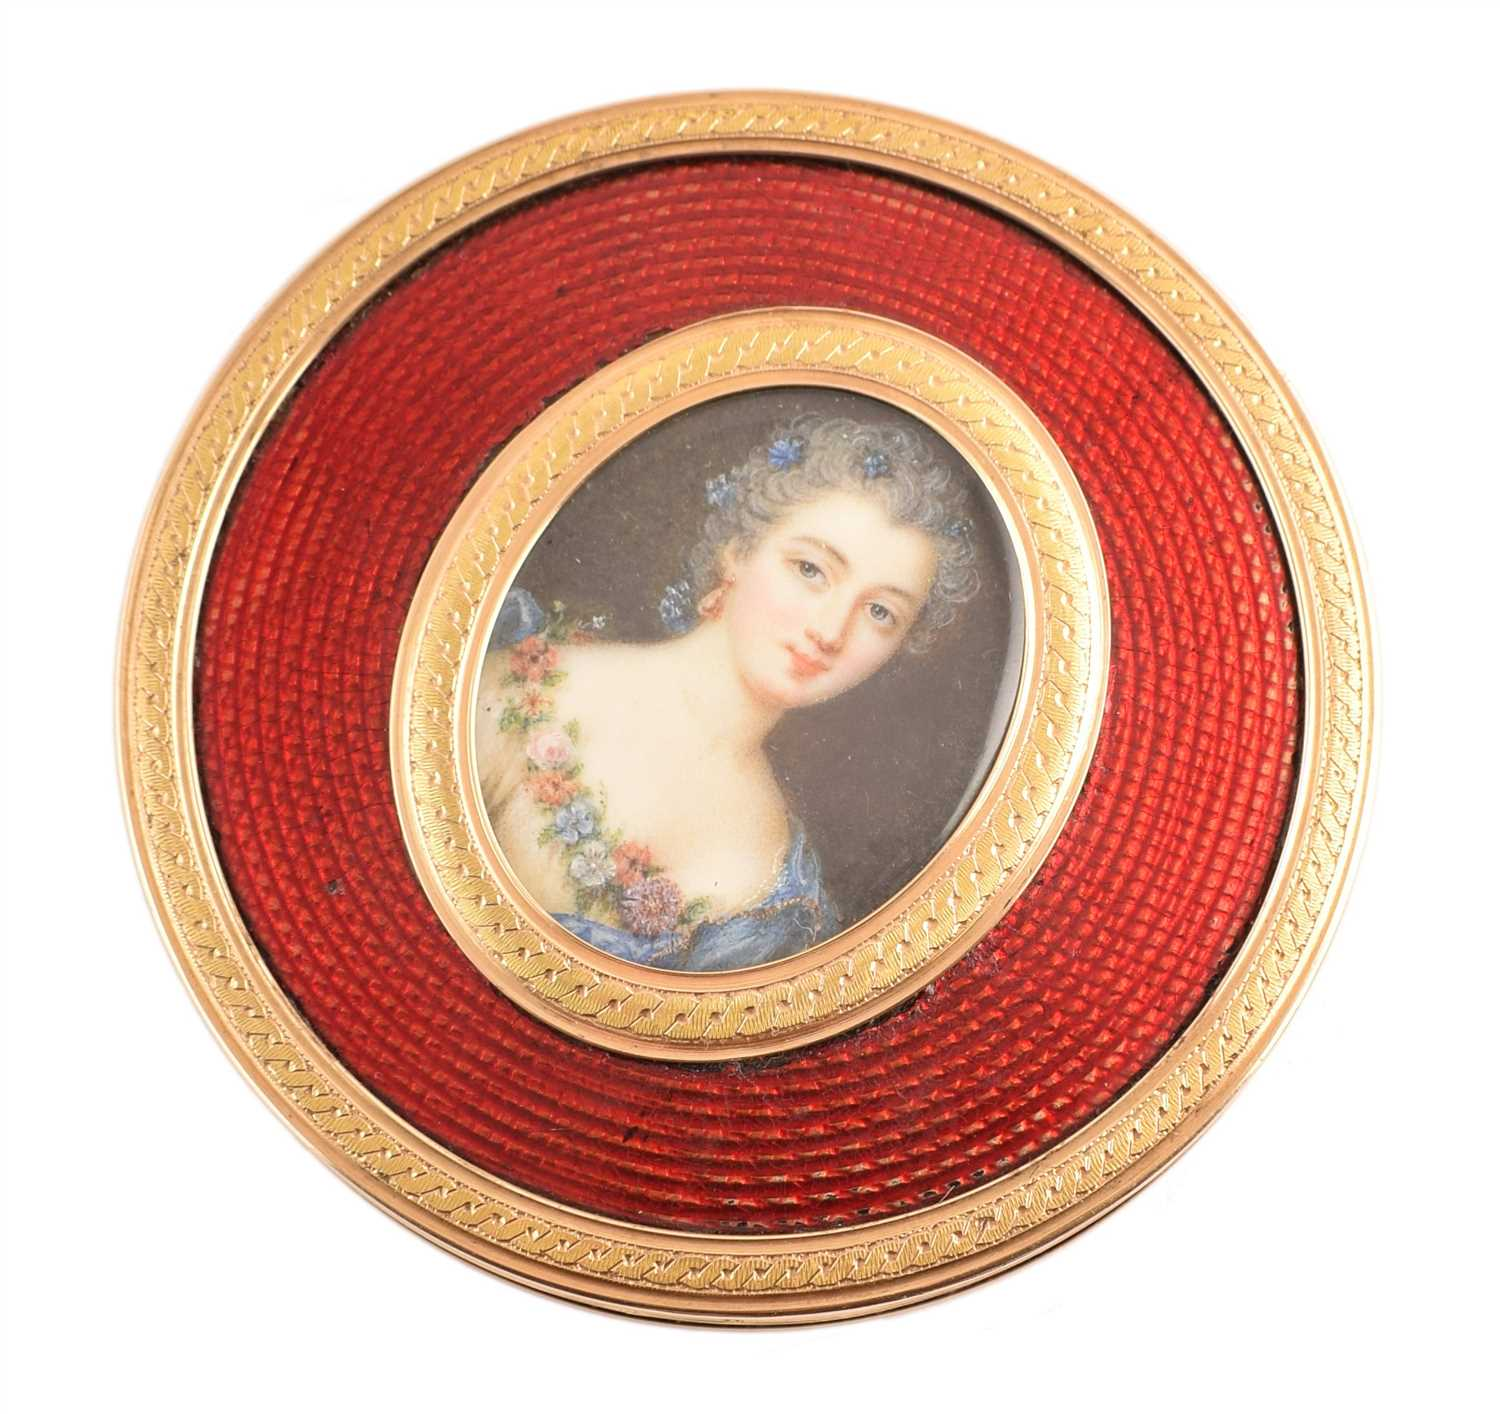 19 - French 18ct gold and enamel round powder box with portrait miniature on ivory